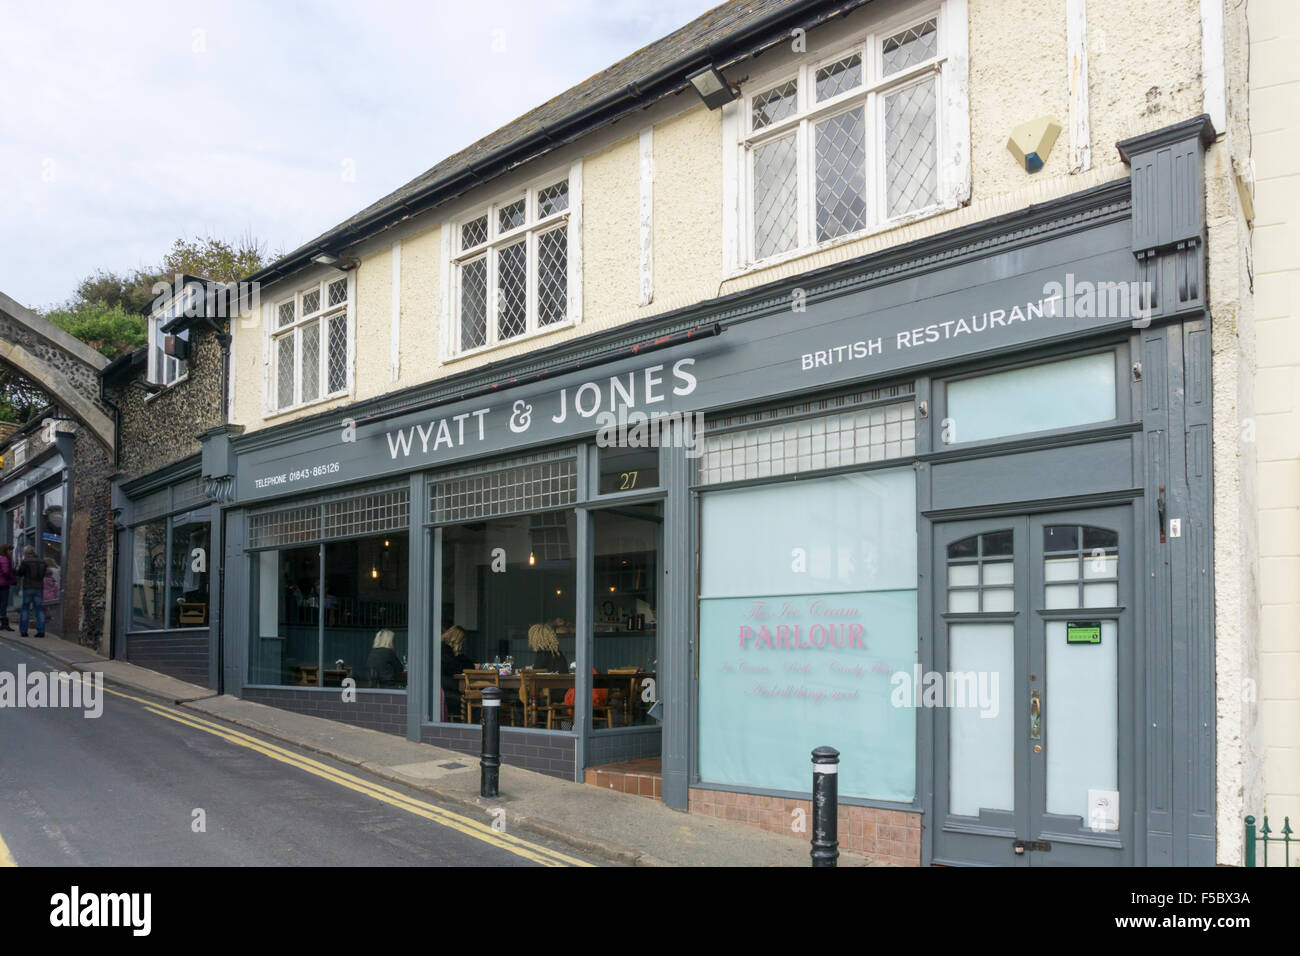 Wyatt & Jones British Restaurant in Broadstairs, Kent. - Stock Image